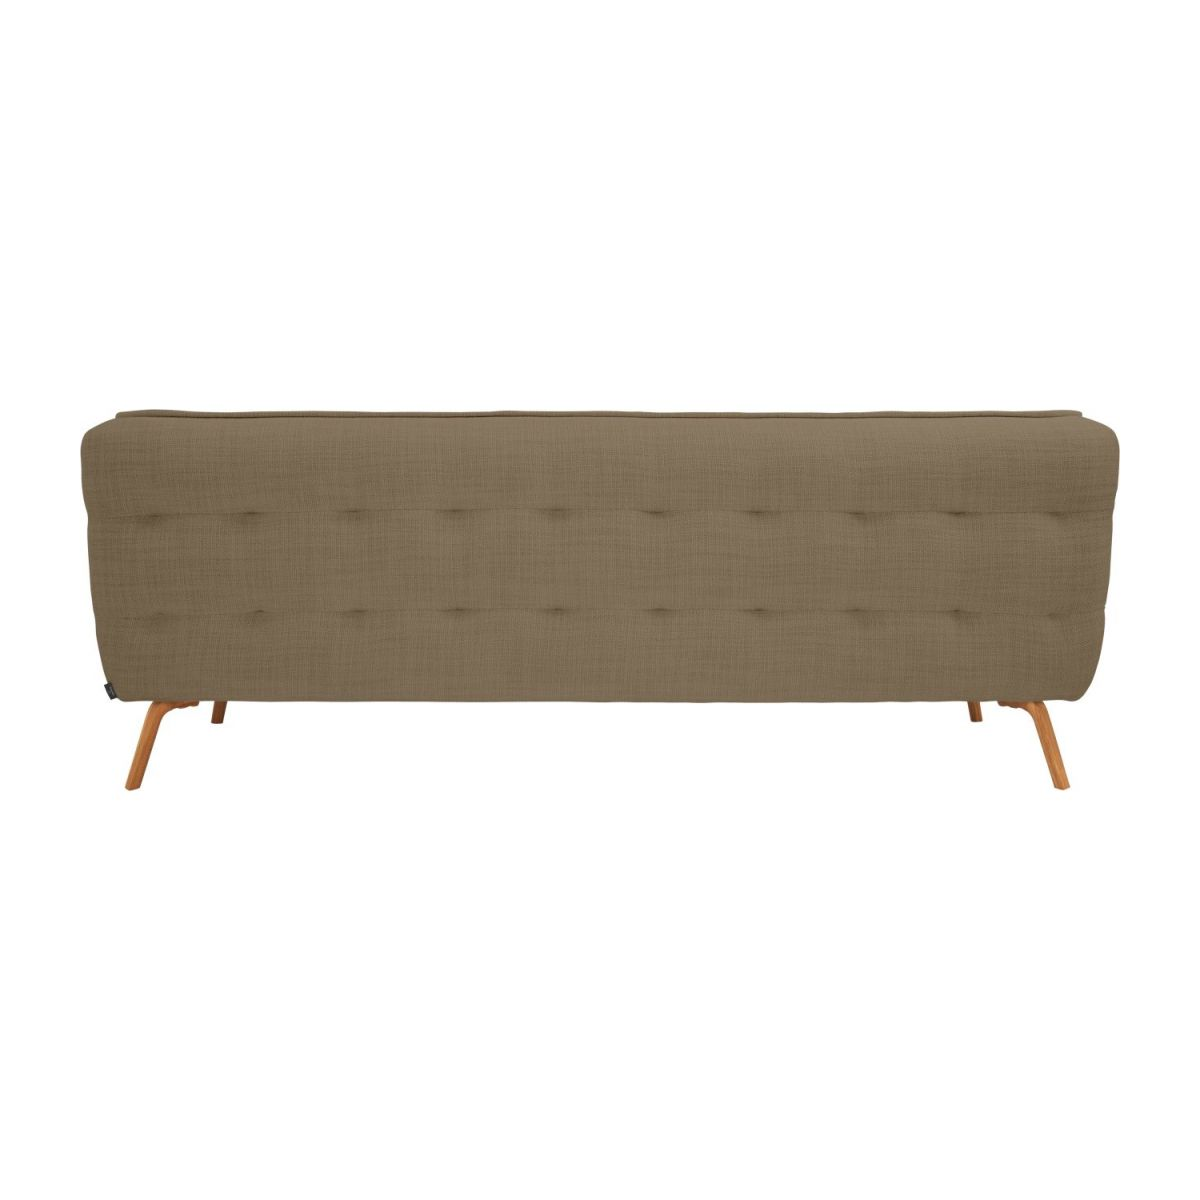 3 seater sofa in Fasoli fabric, jatoba brown and oak legs n°3